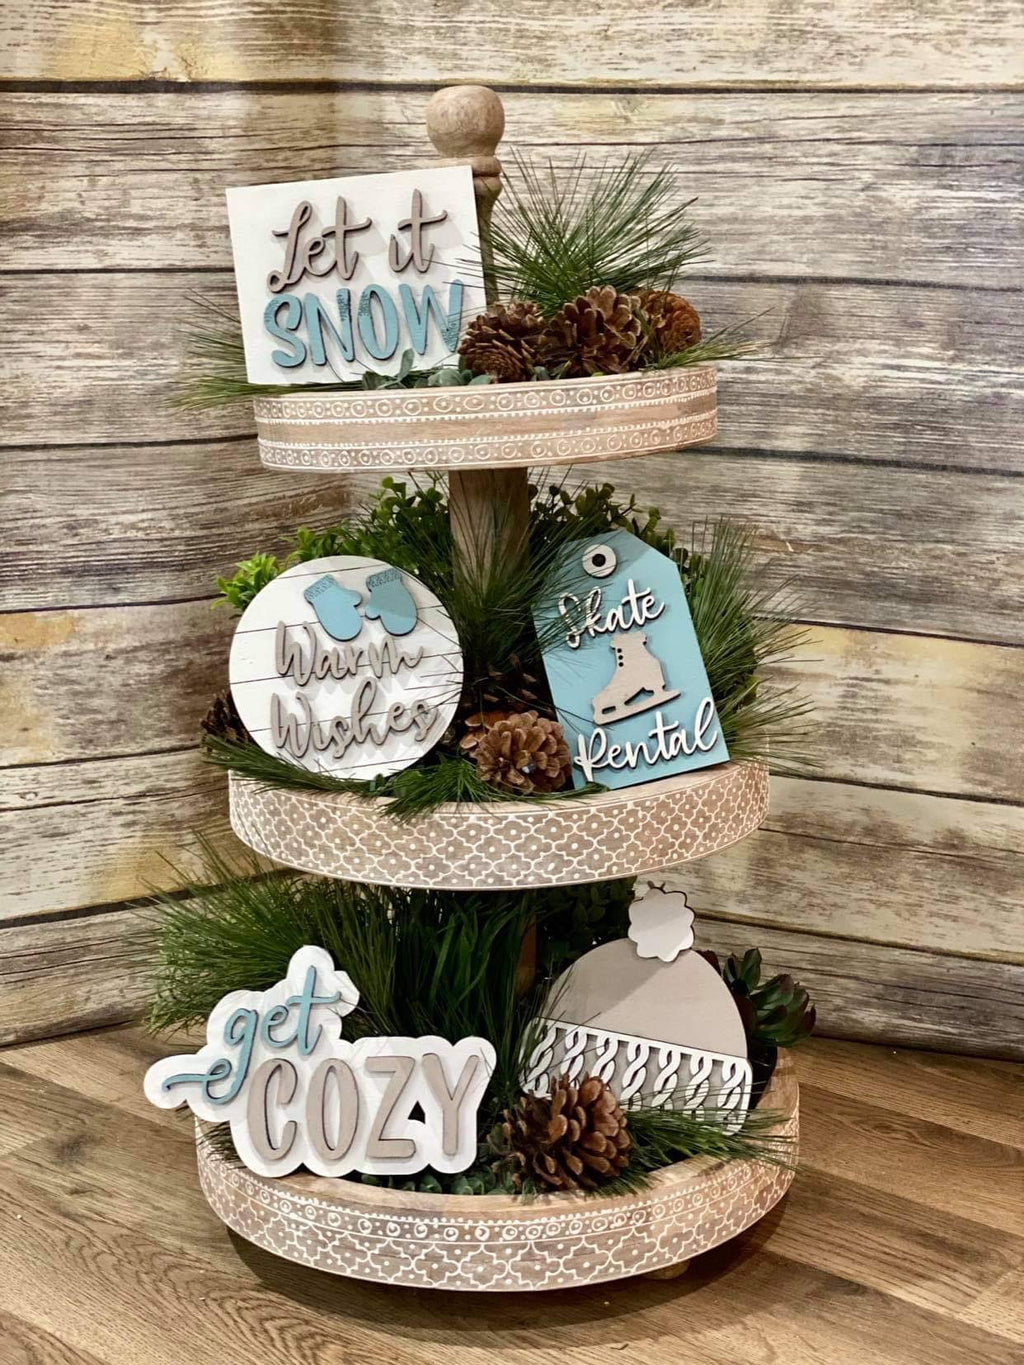 3D Tiered Tray Decor - Winter